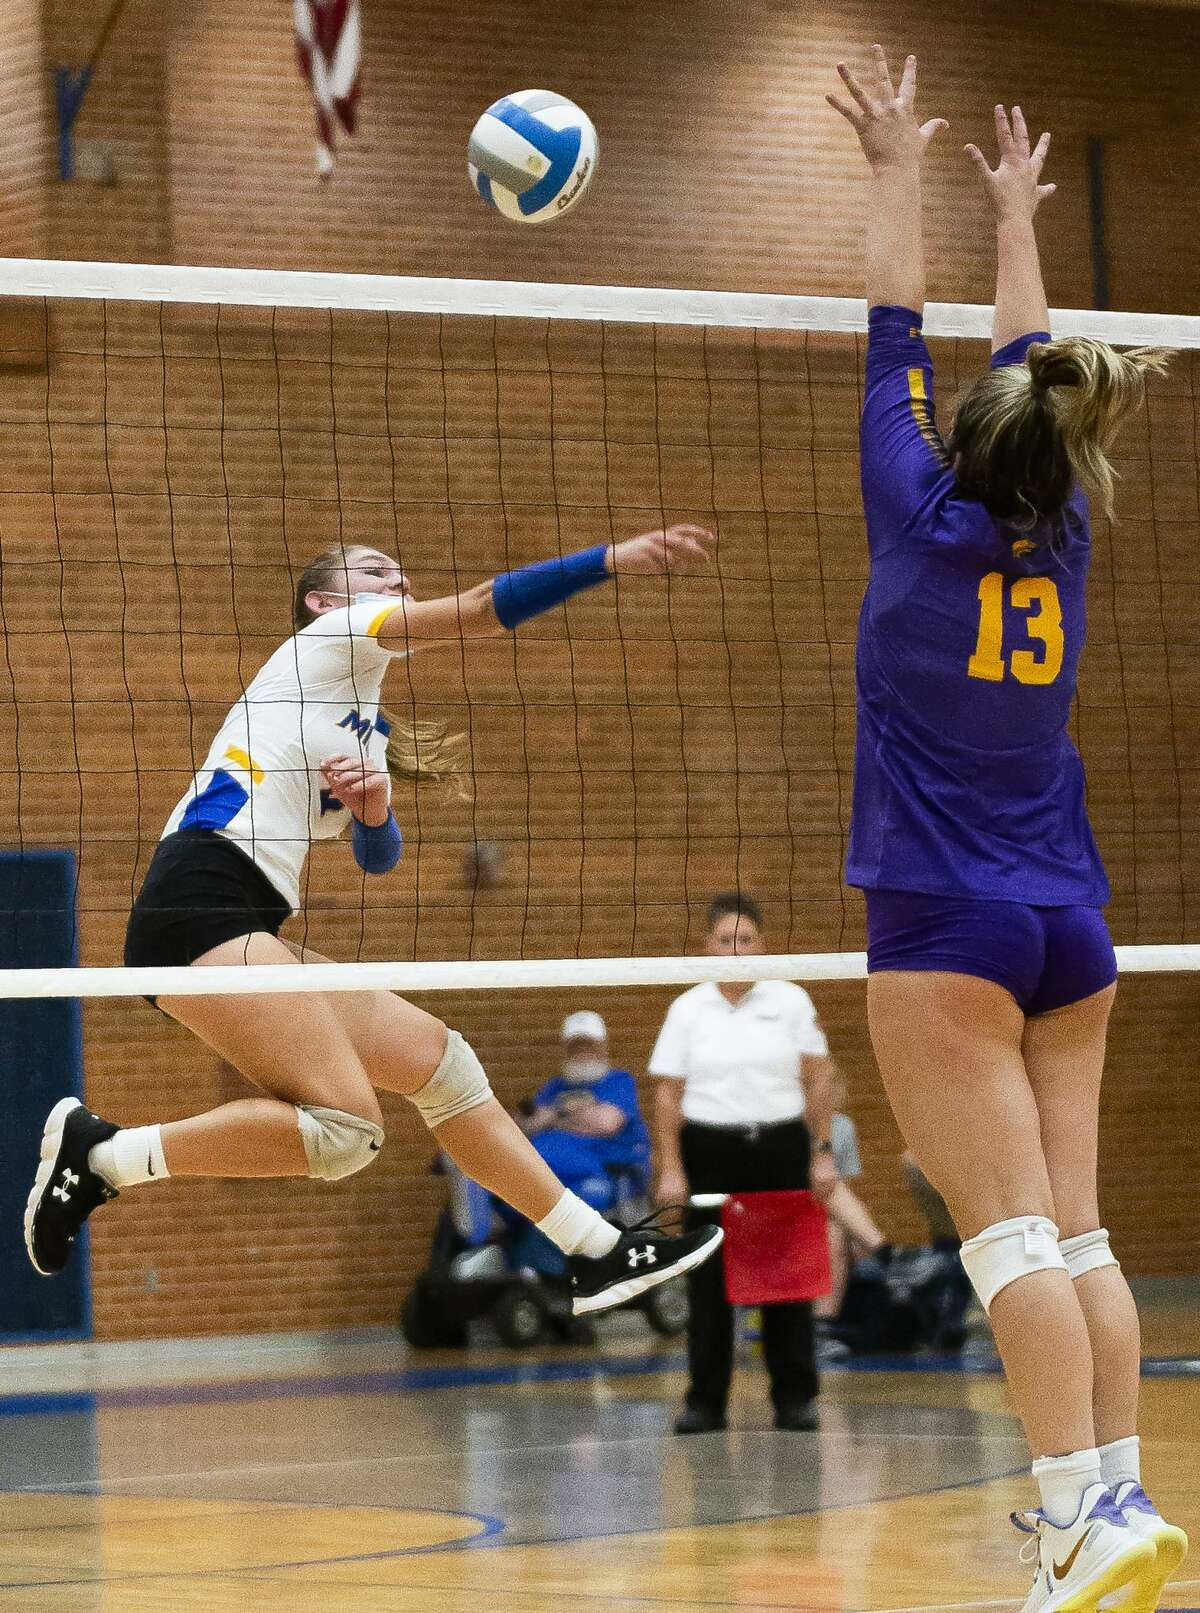 Midland's Renee Mulvaney spikes the ball during the Chemics' match against Bay City Central Tuesday, Sept. 14, 2021 at Midland High School. (Doug Julian/for the Daily News)